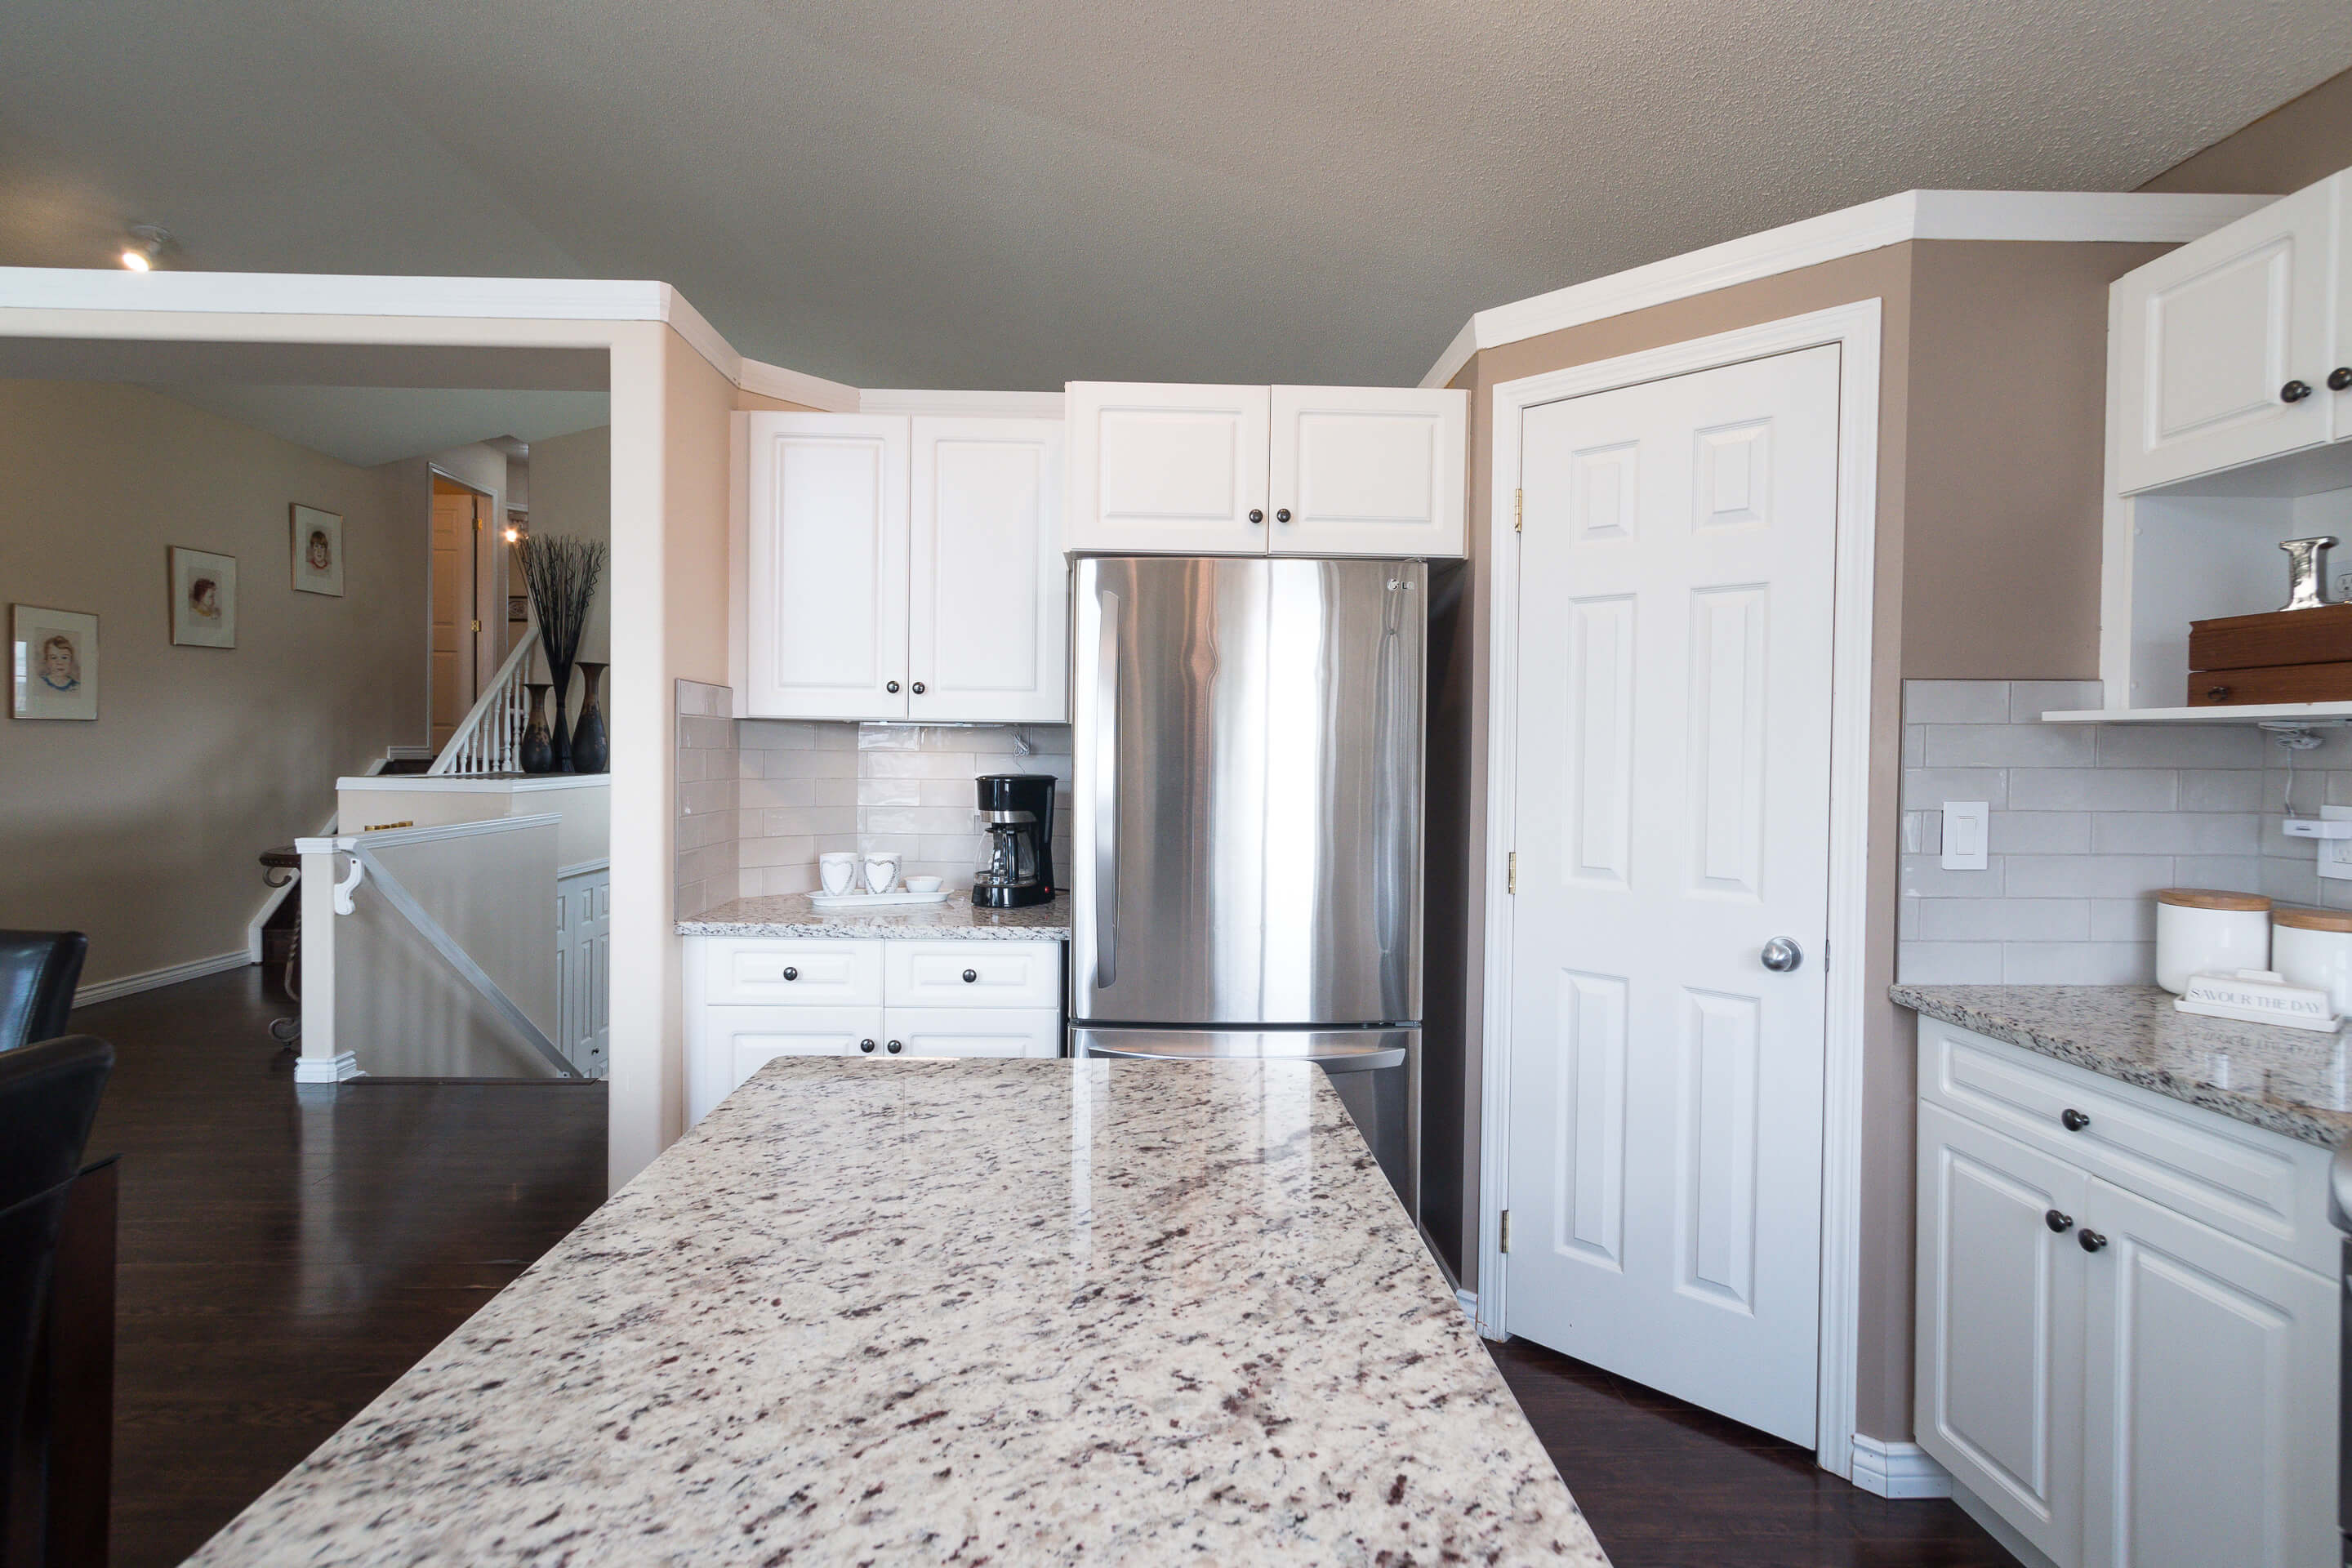 Hello Gorgeous - 225 Stonegate Crescent NW Airdrie - Tara Molina Real Estate (12 of 37)